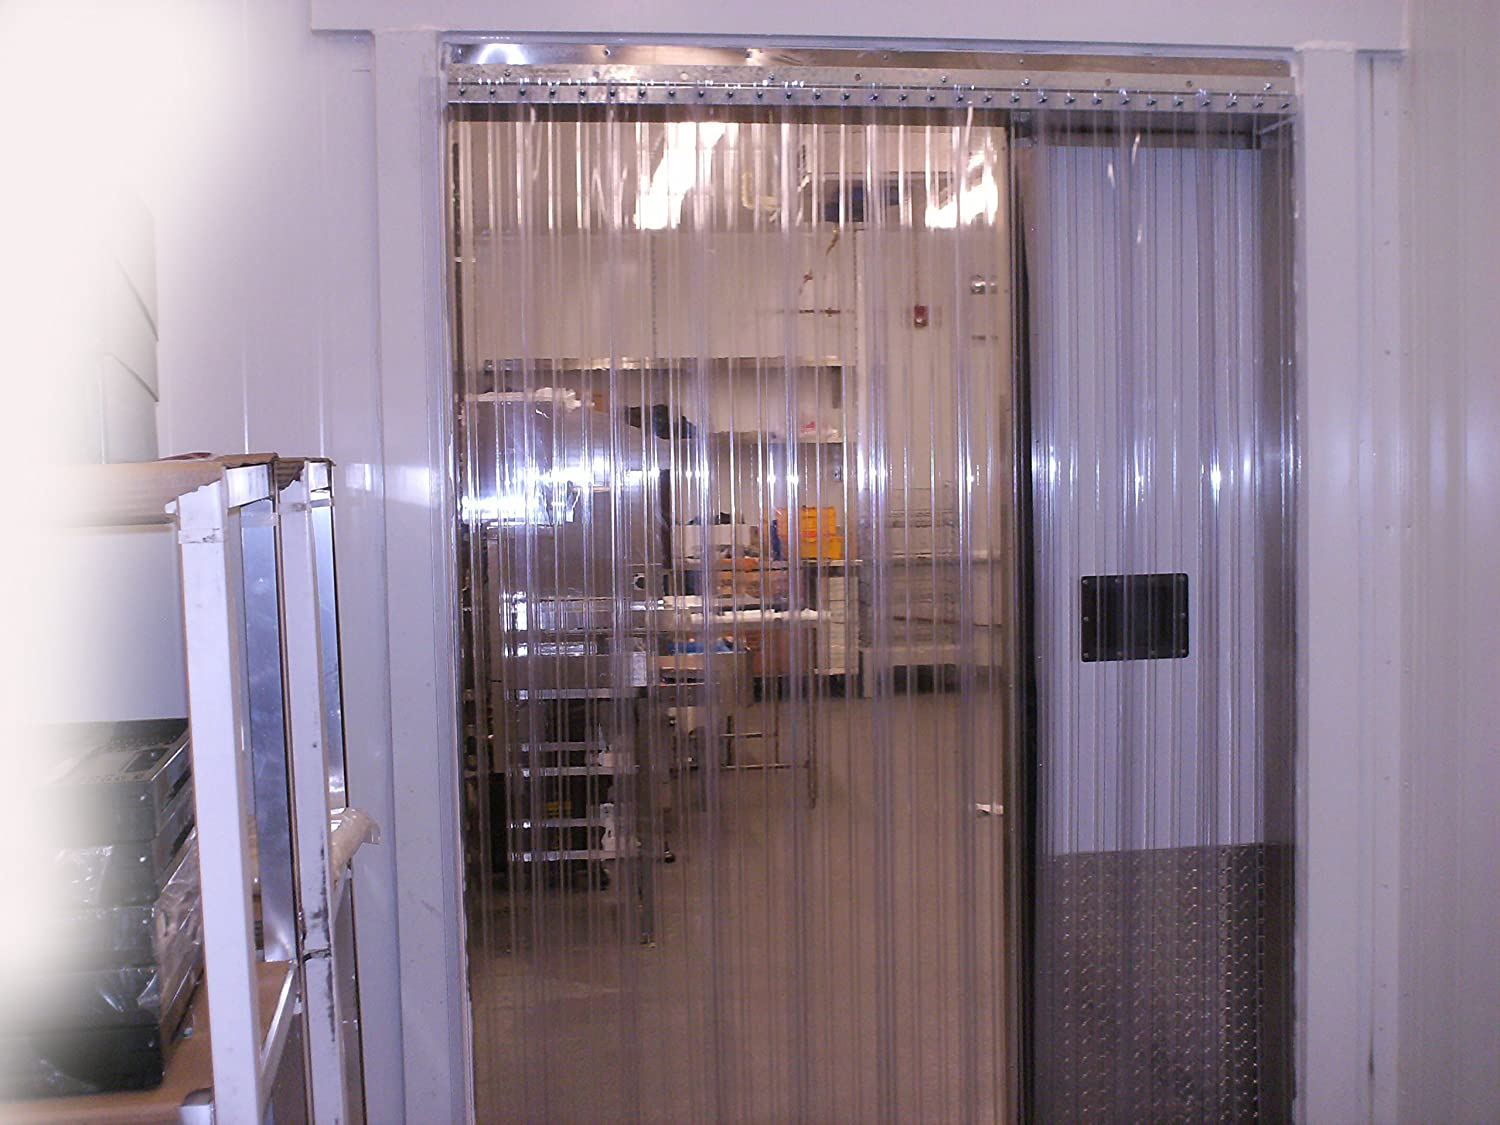 Strip-Curtains.com: Strip Door Curtain - 48 in. (4 ft) width X 84 in. (7 ft) height - Ribbed Anti Scratch Low Temp 8 in. strips with 50% overlap - common door kit (Hardware included)